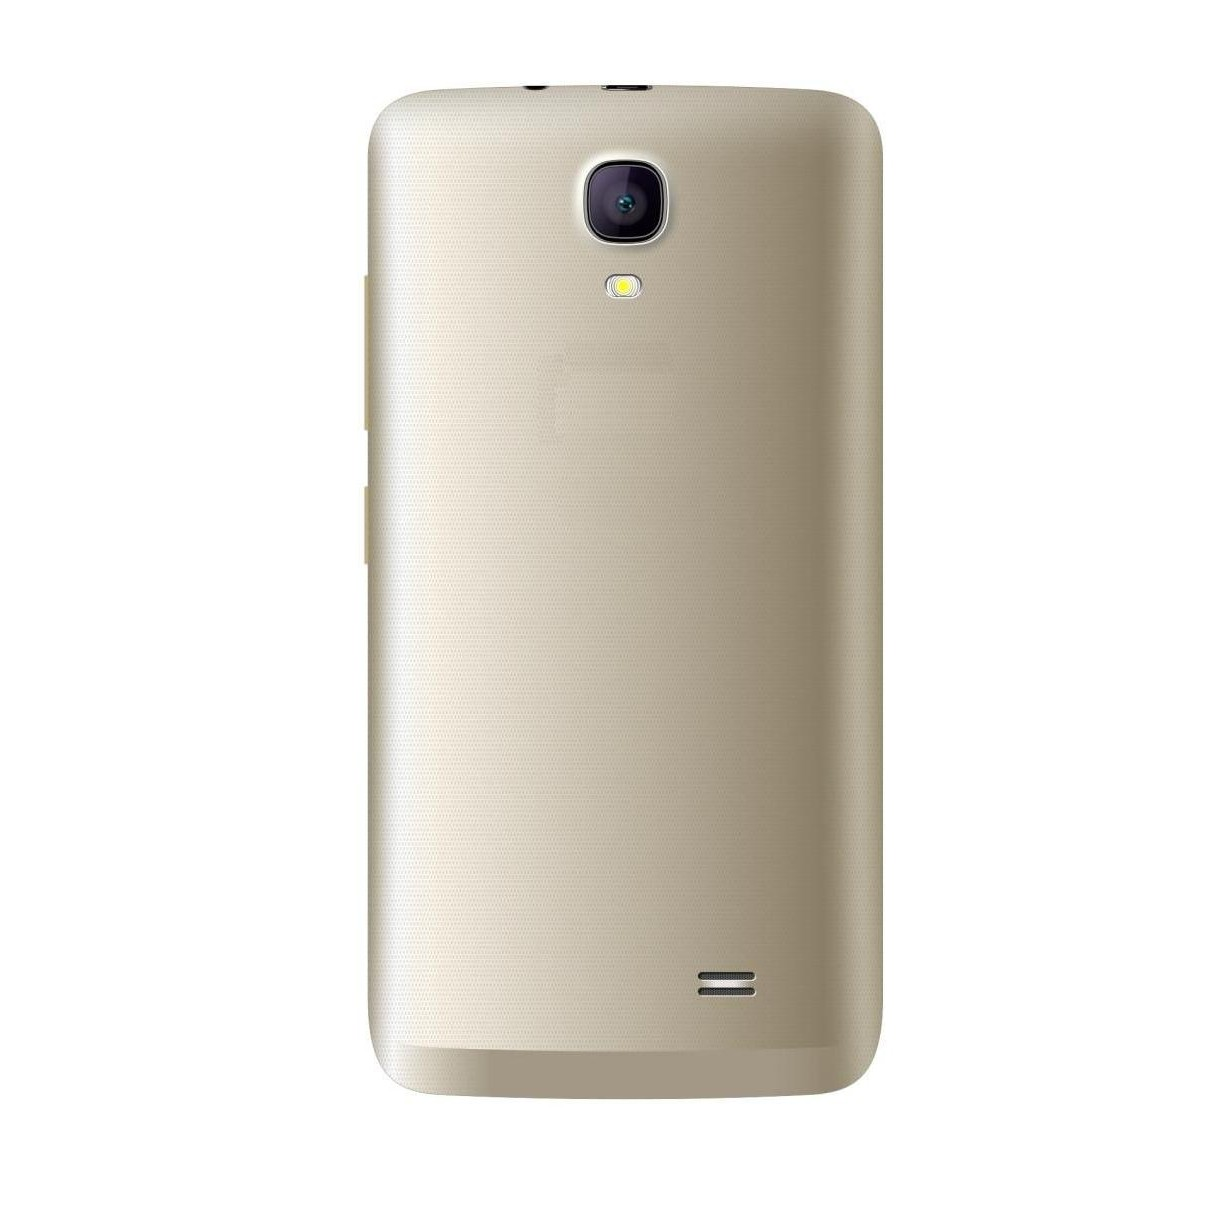 new arrivals a64a8 f781c Full Body Housing for Micromax Bolt Q383 - Gold